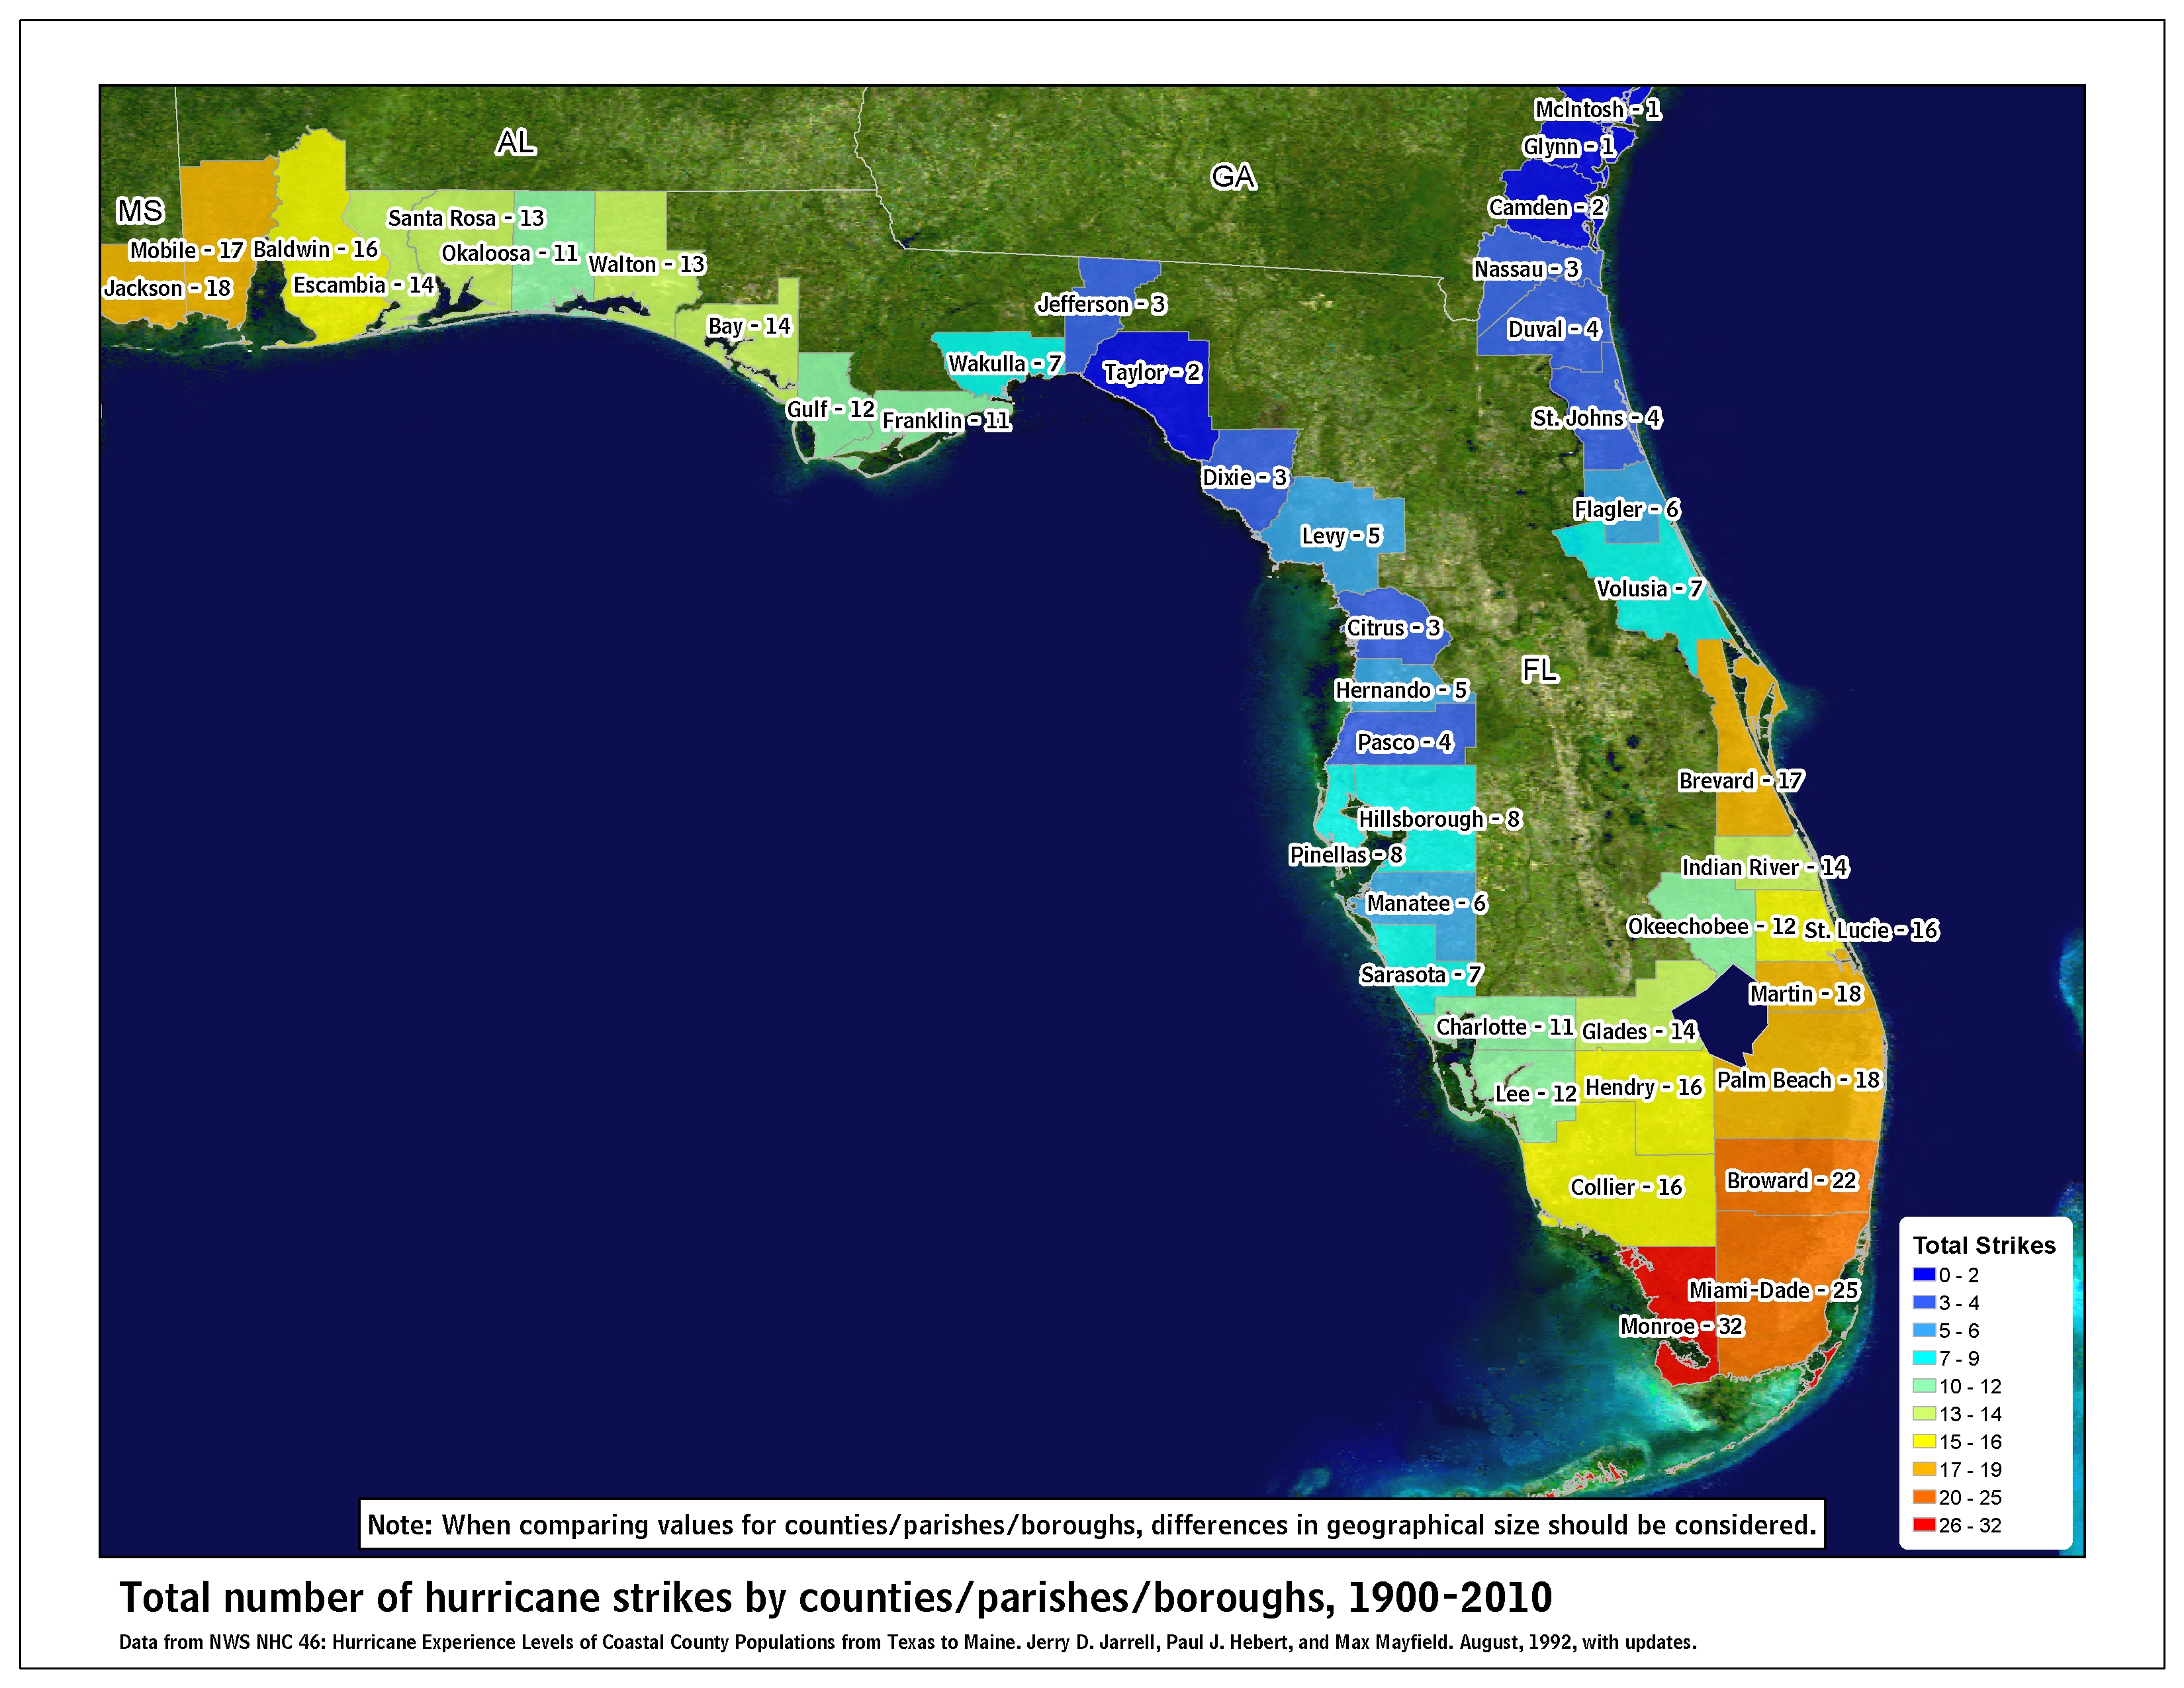 map of 1900 2010 hurricane strikes by u s counties parishes east gulf